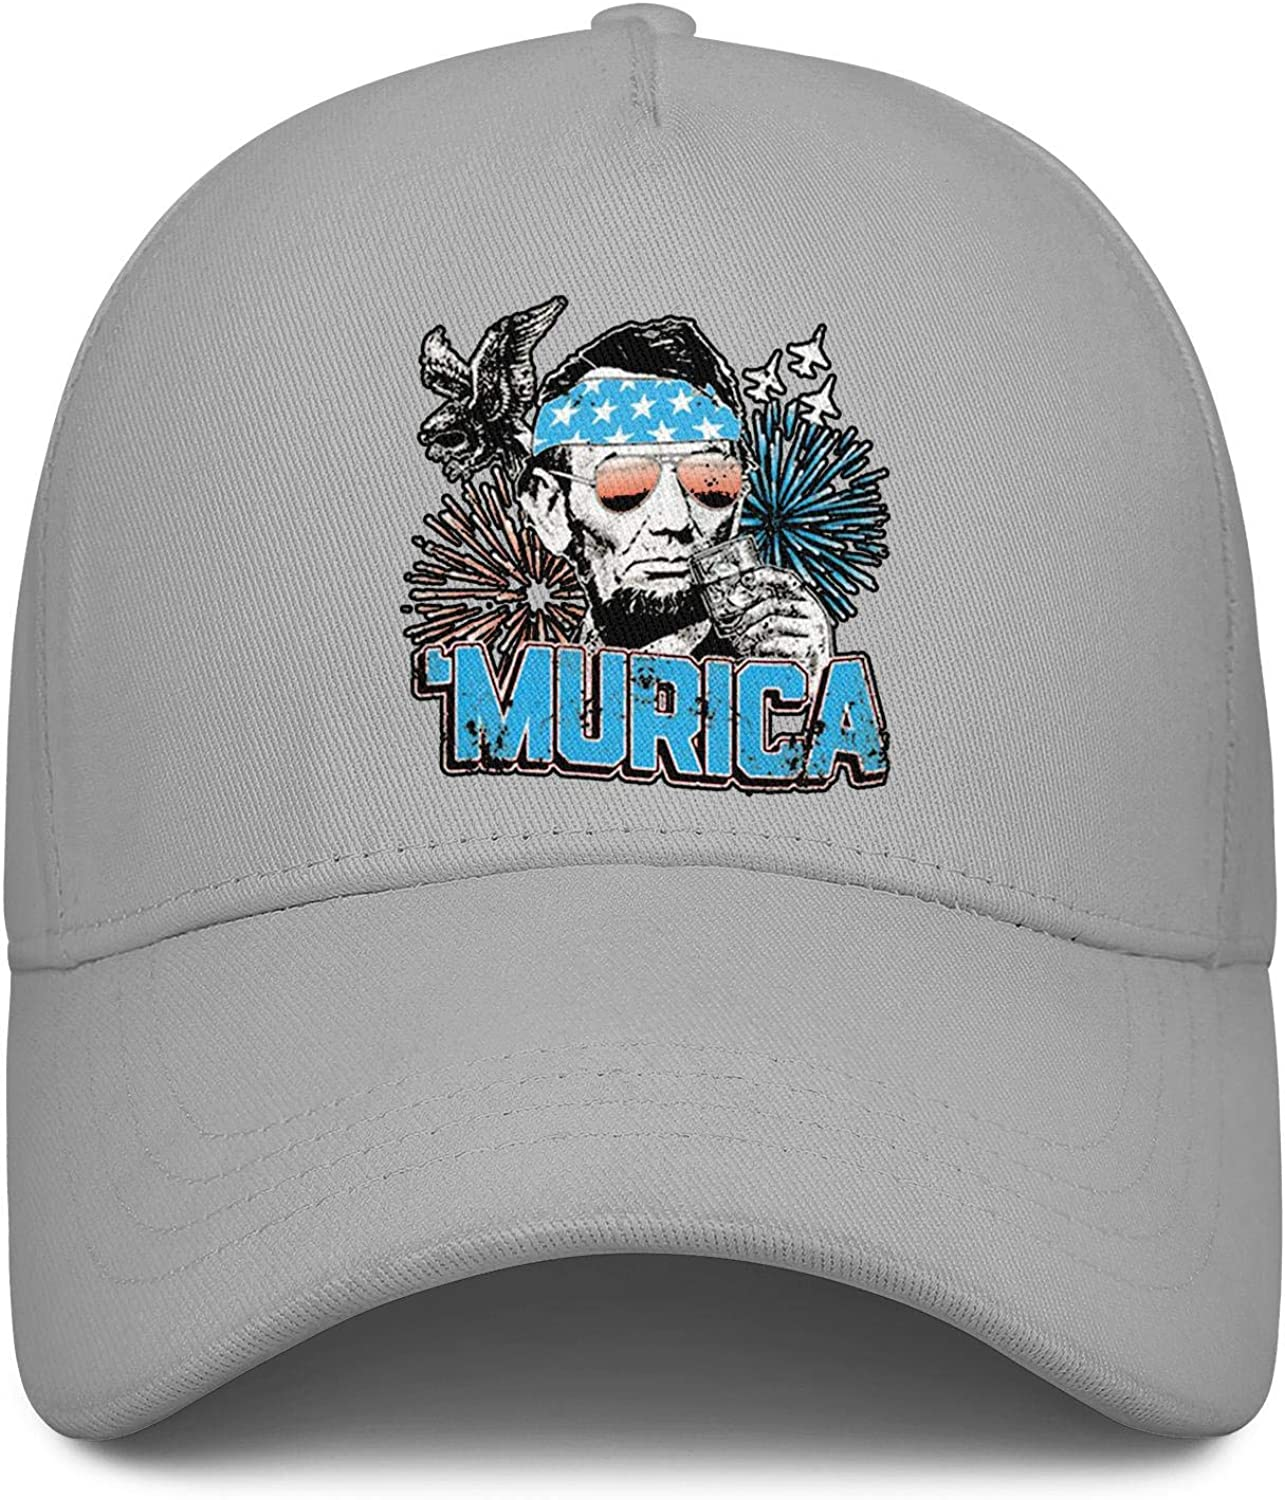 Murica Abe Lincoln Memorial Day Unisex Baseball Cap Highly Breathable Fishing Caps Adjustable Trucker Caps Dad-Hat